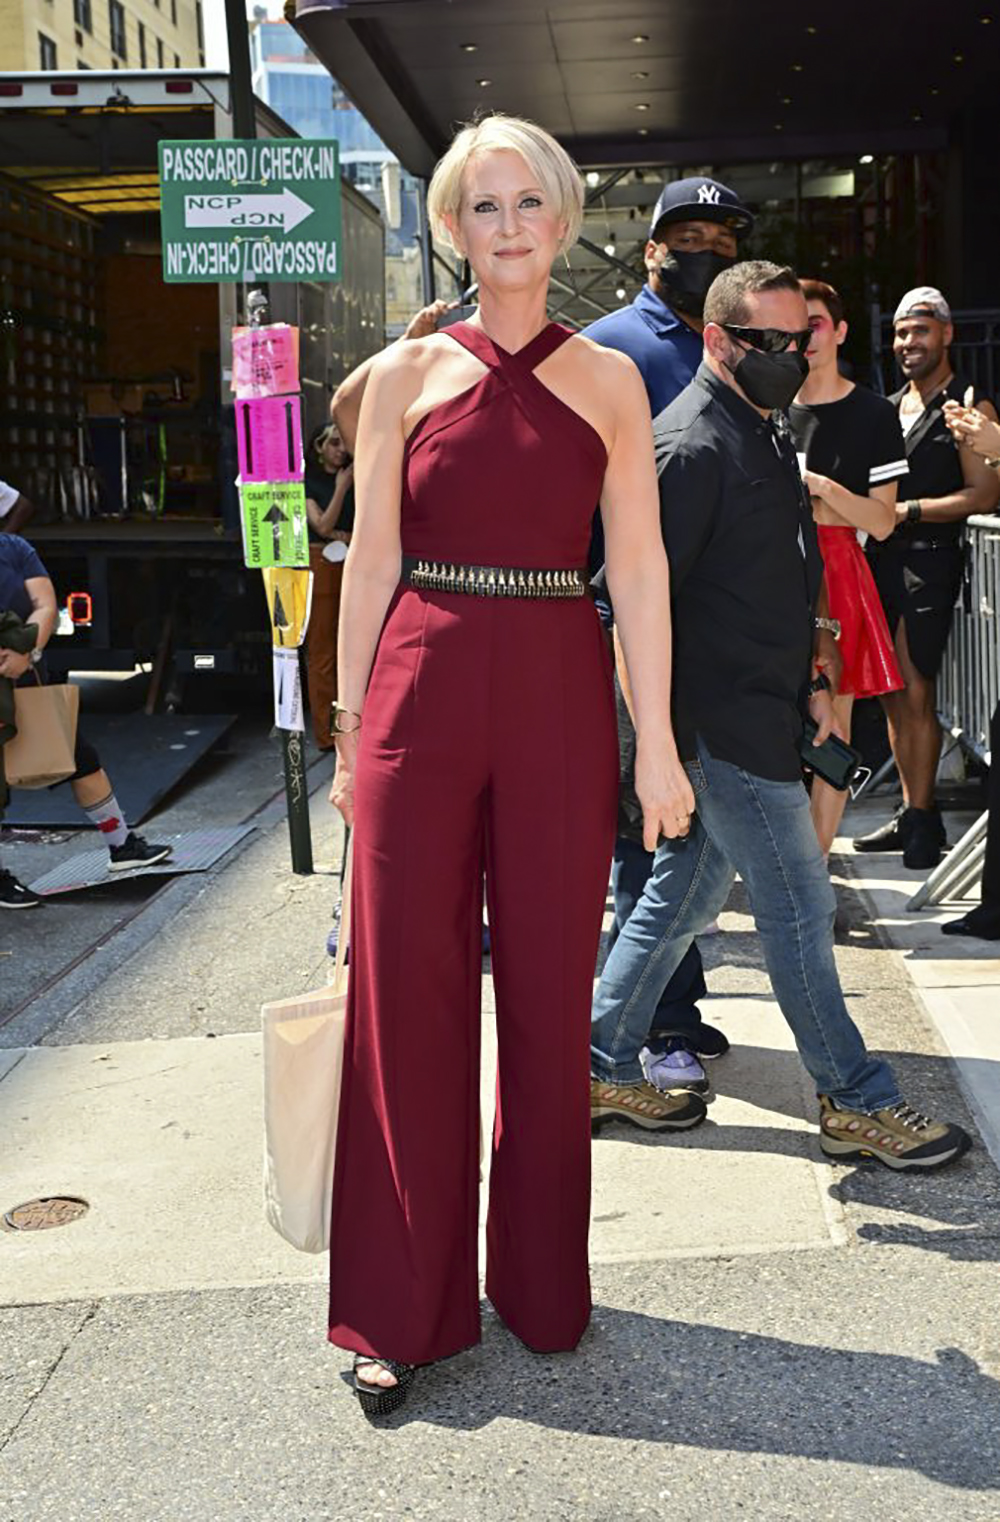 cynthia nixon outfit sex and the city reboot jumosuit đỏ